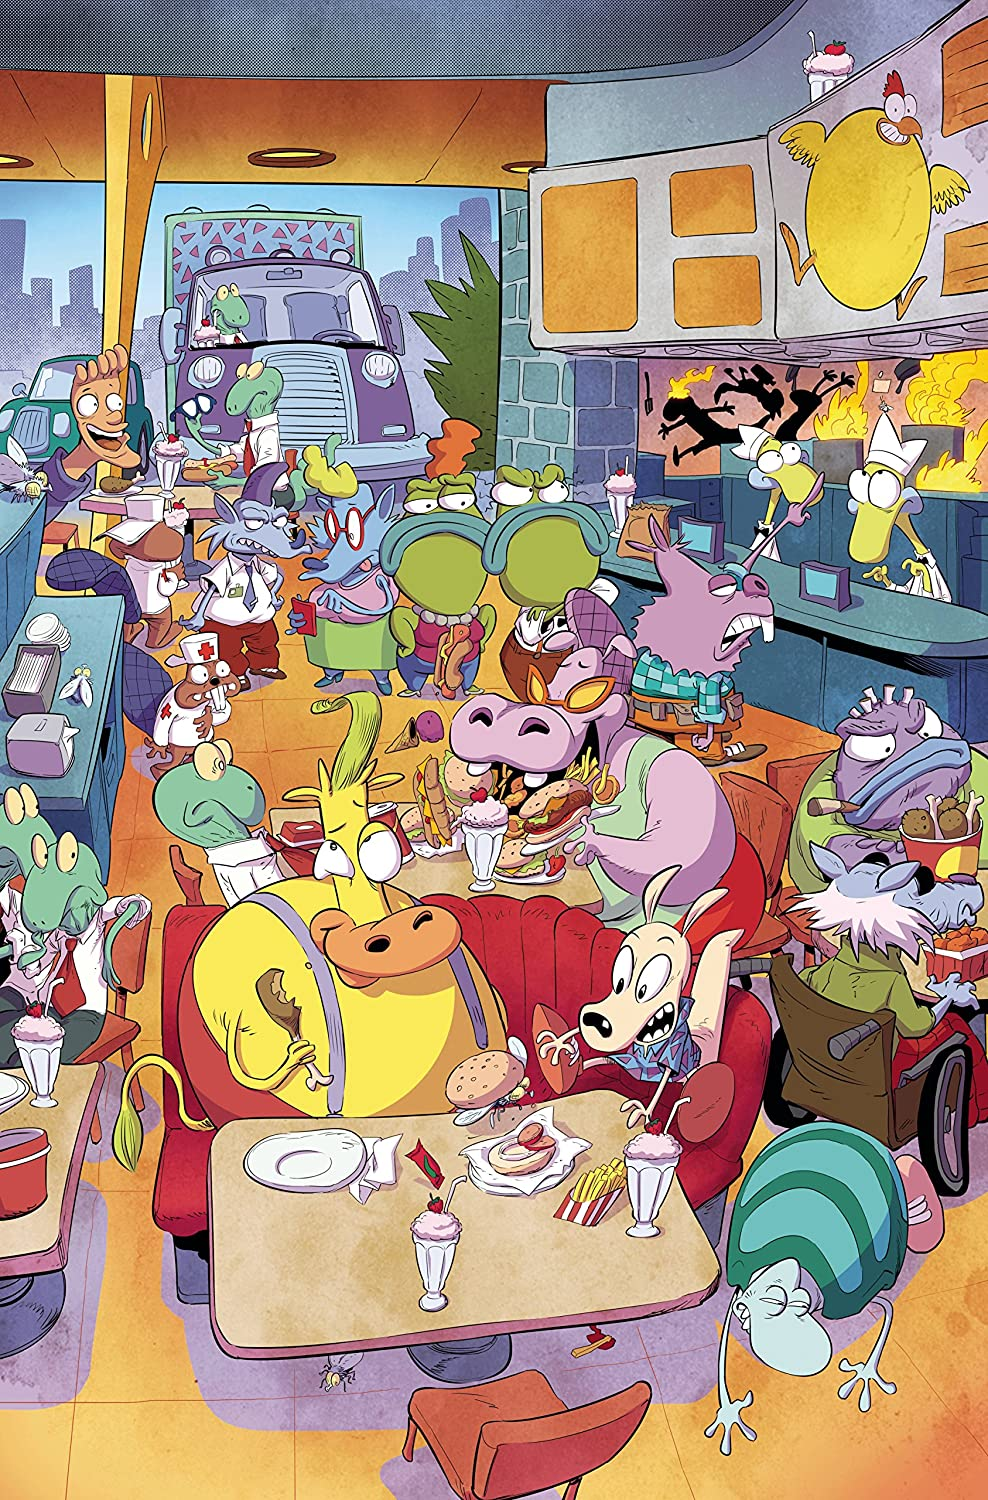 ROCKO'S MODERN LIFE #3 LOOK & FIND VARIANT COVER